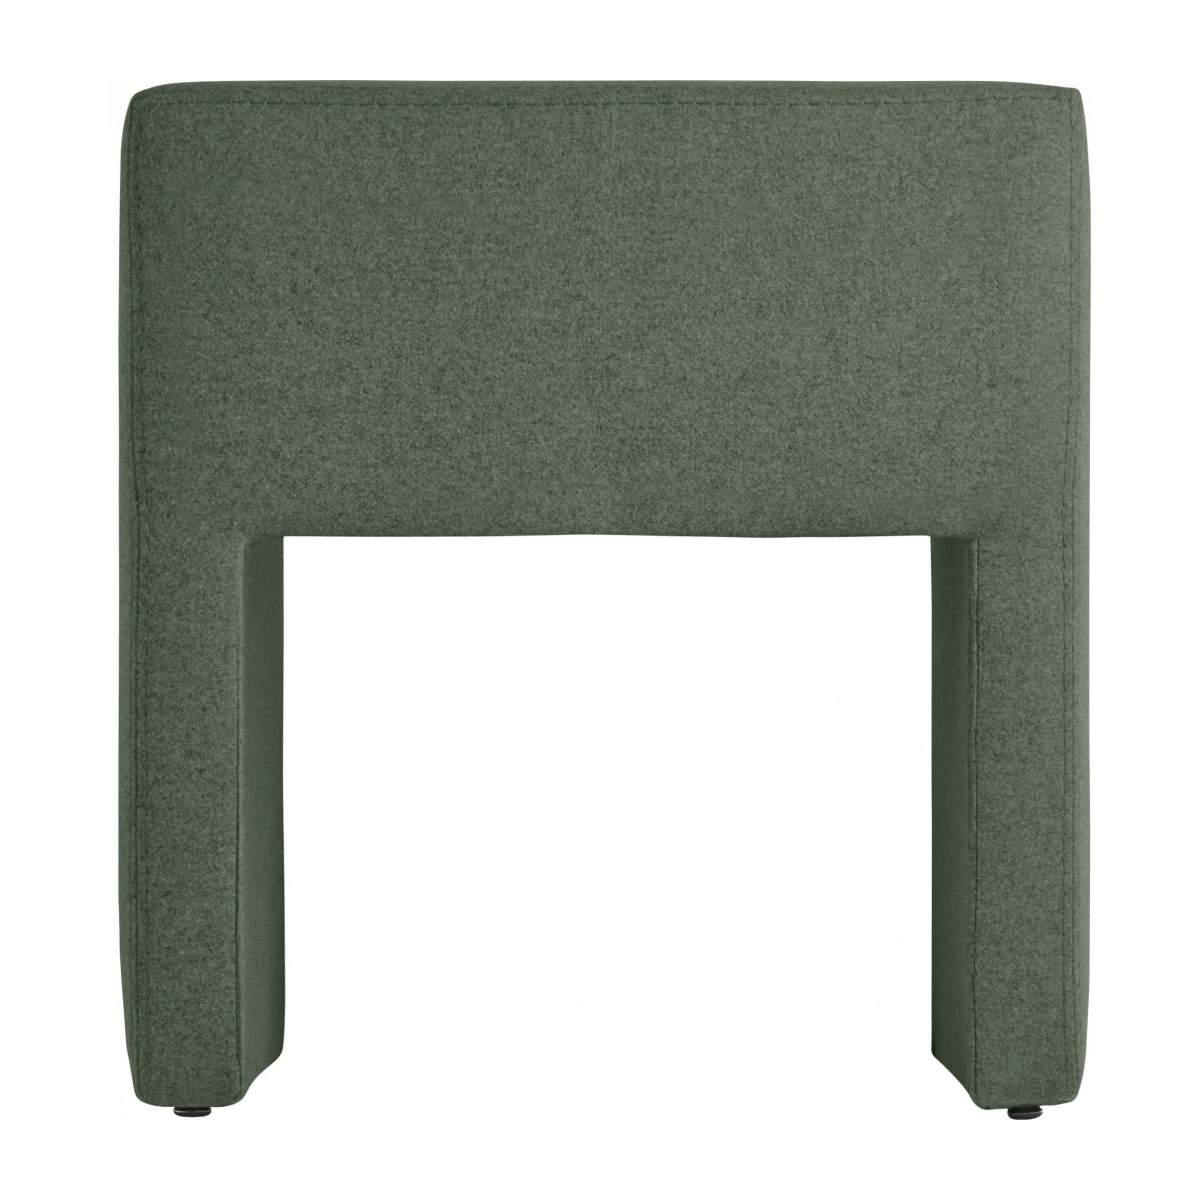 Fabric bedside table n°6